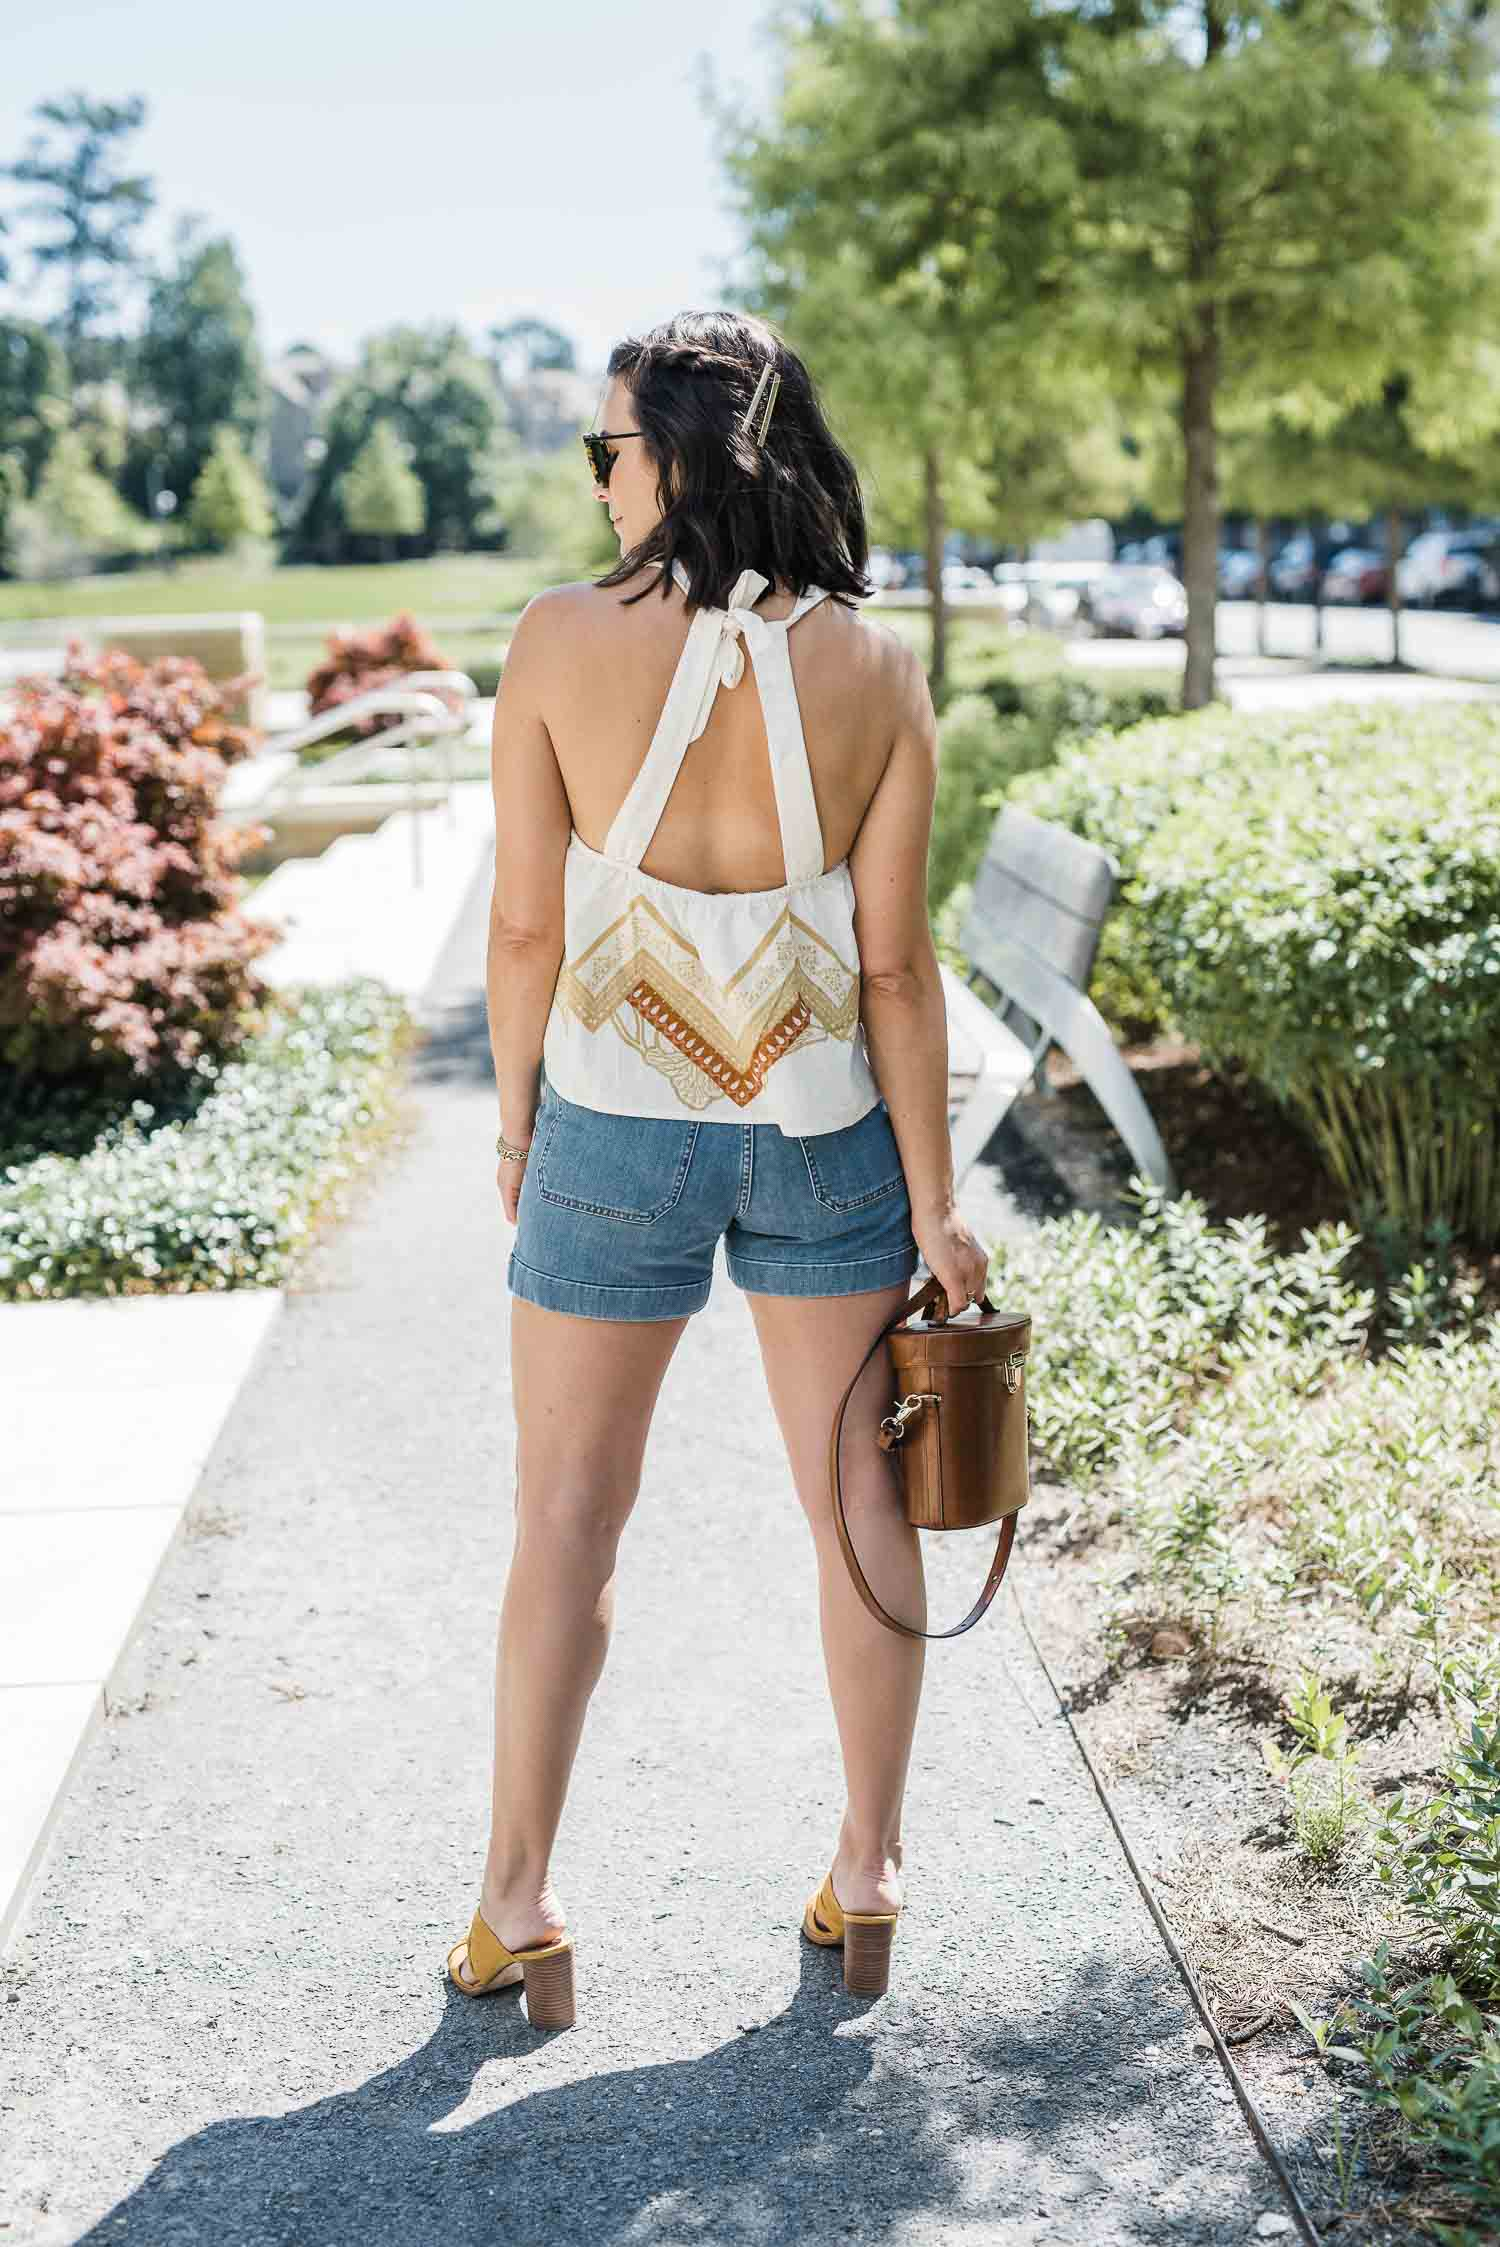 Jessica Camerata is sharing some Free People Tops